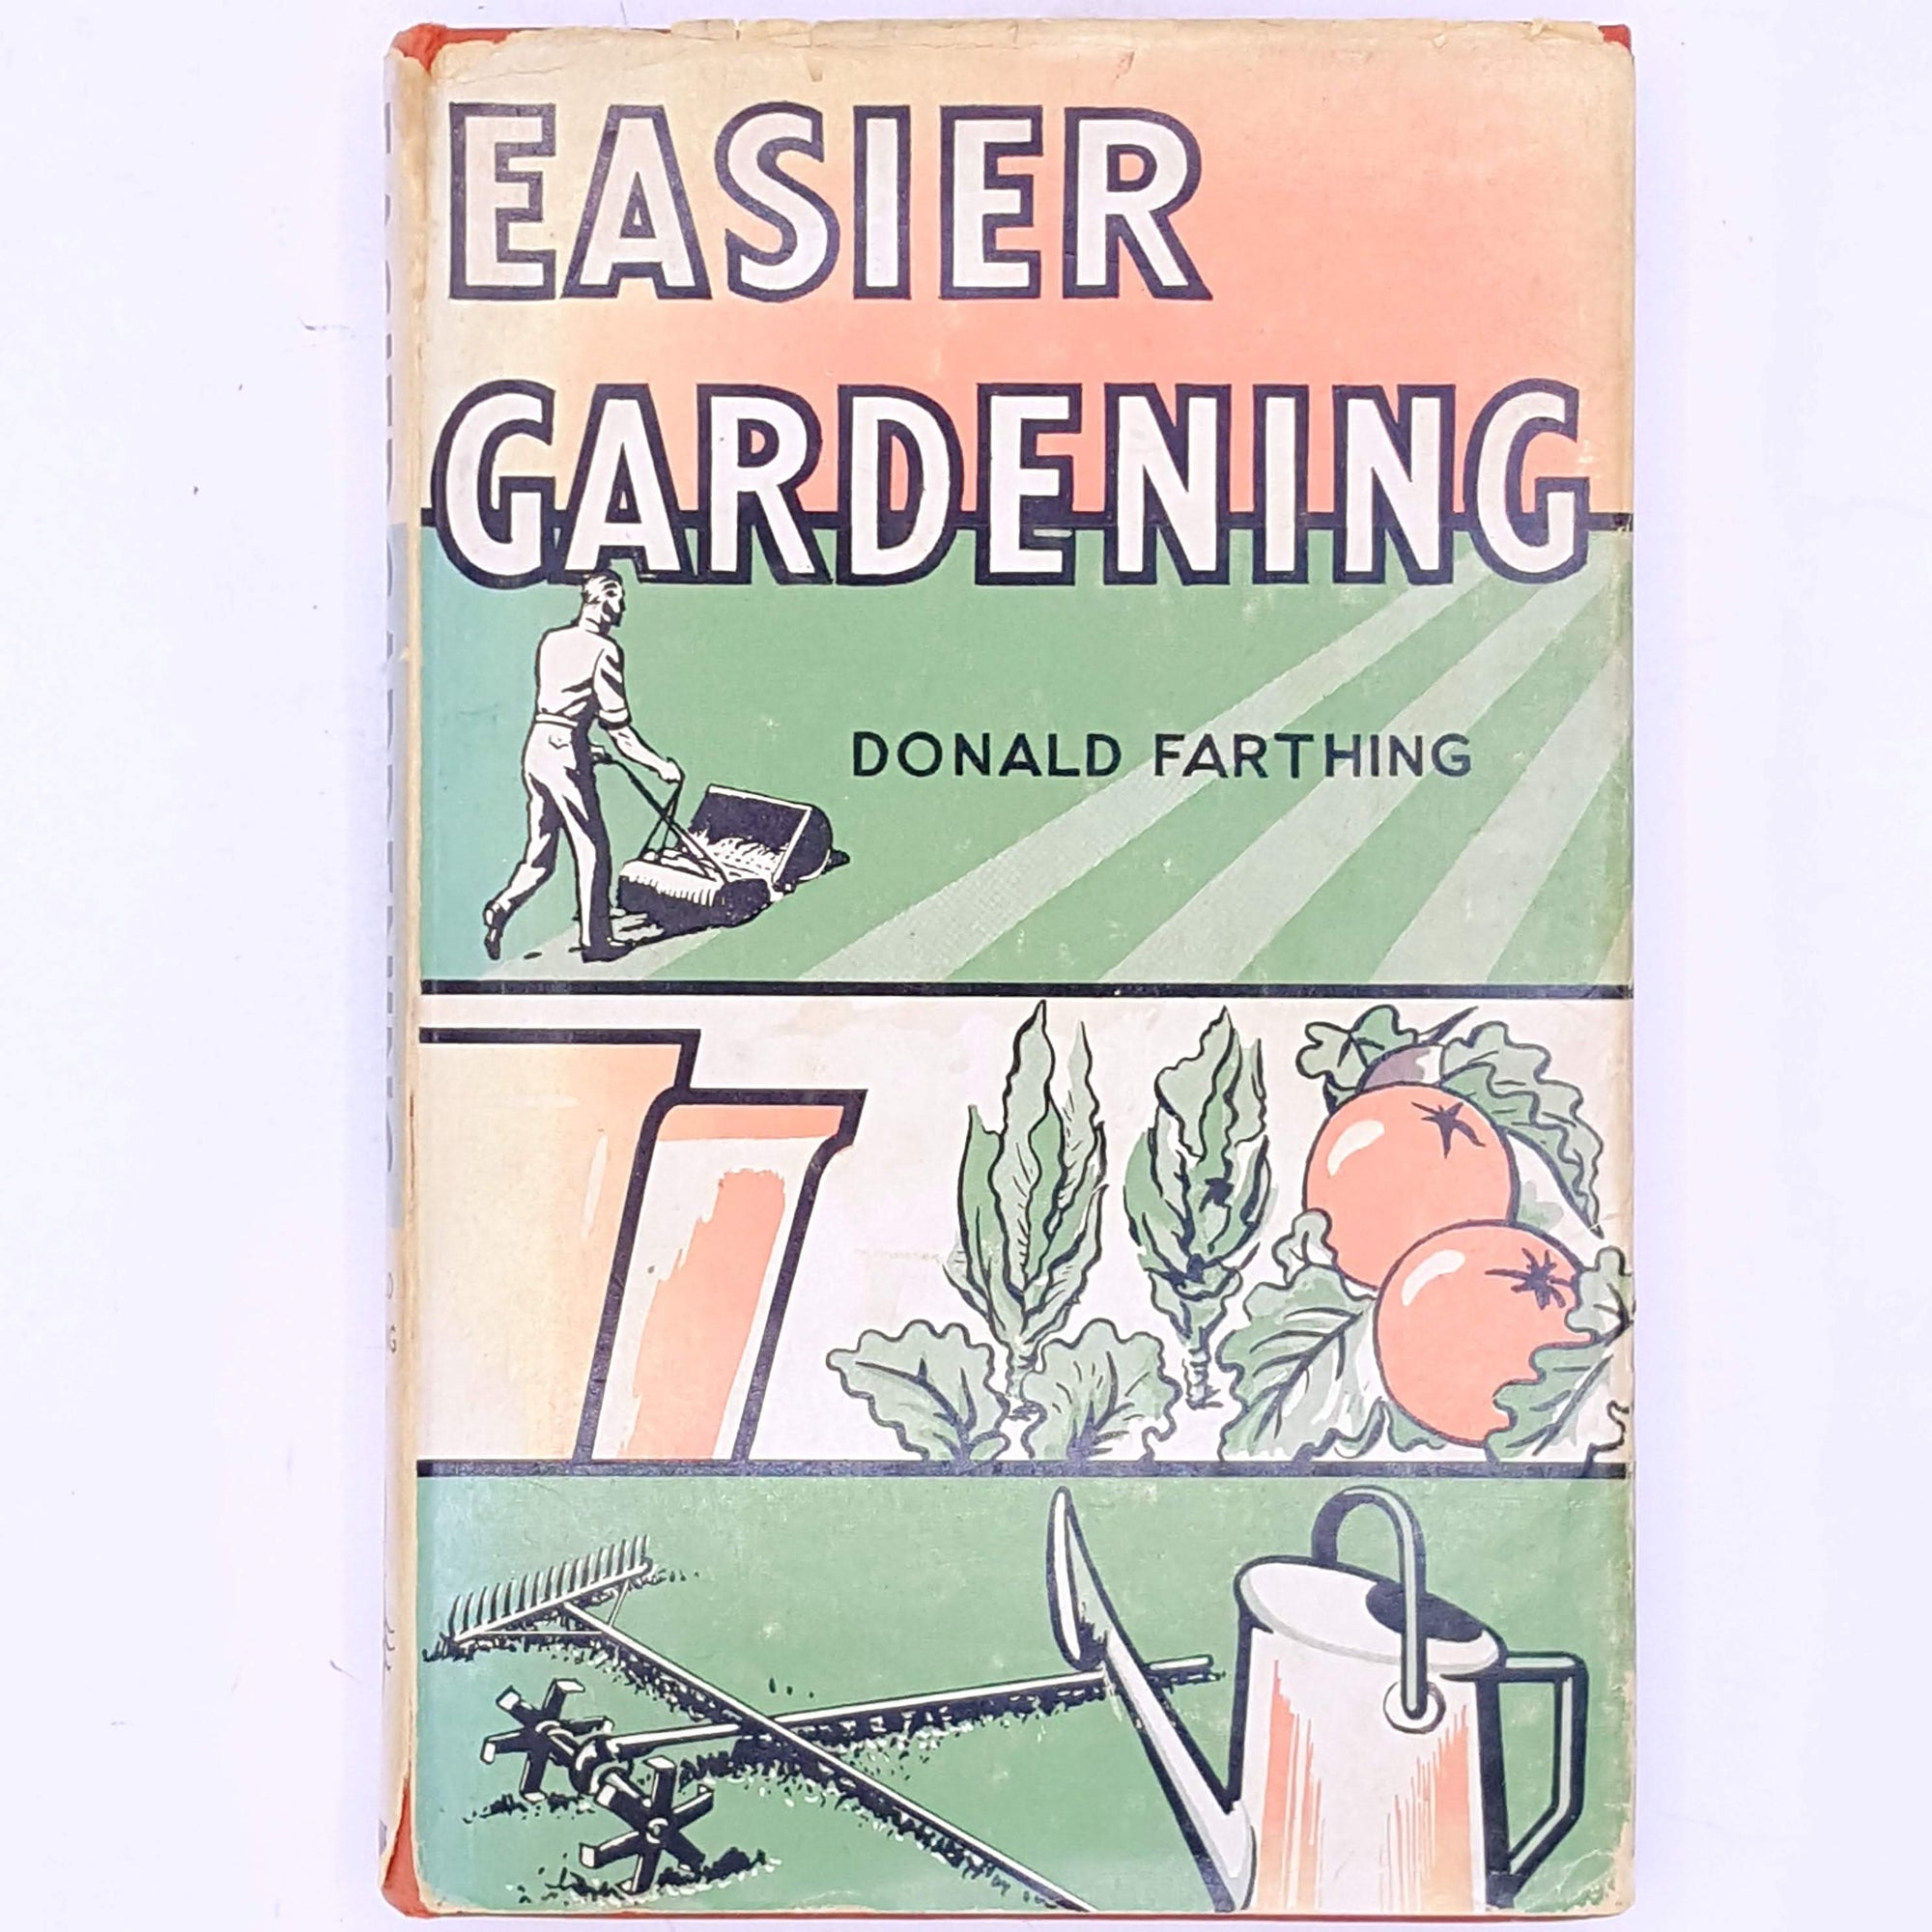 Easier Gardening Donald Farthing